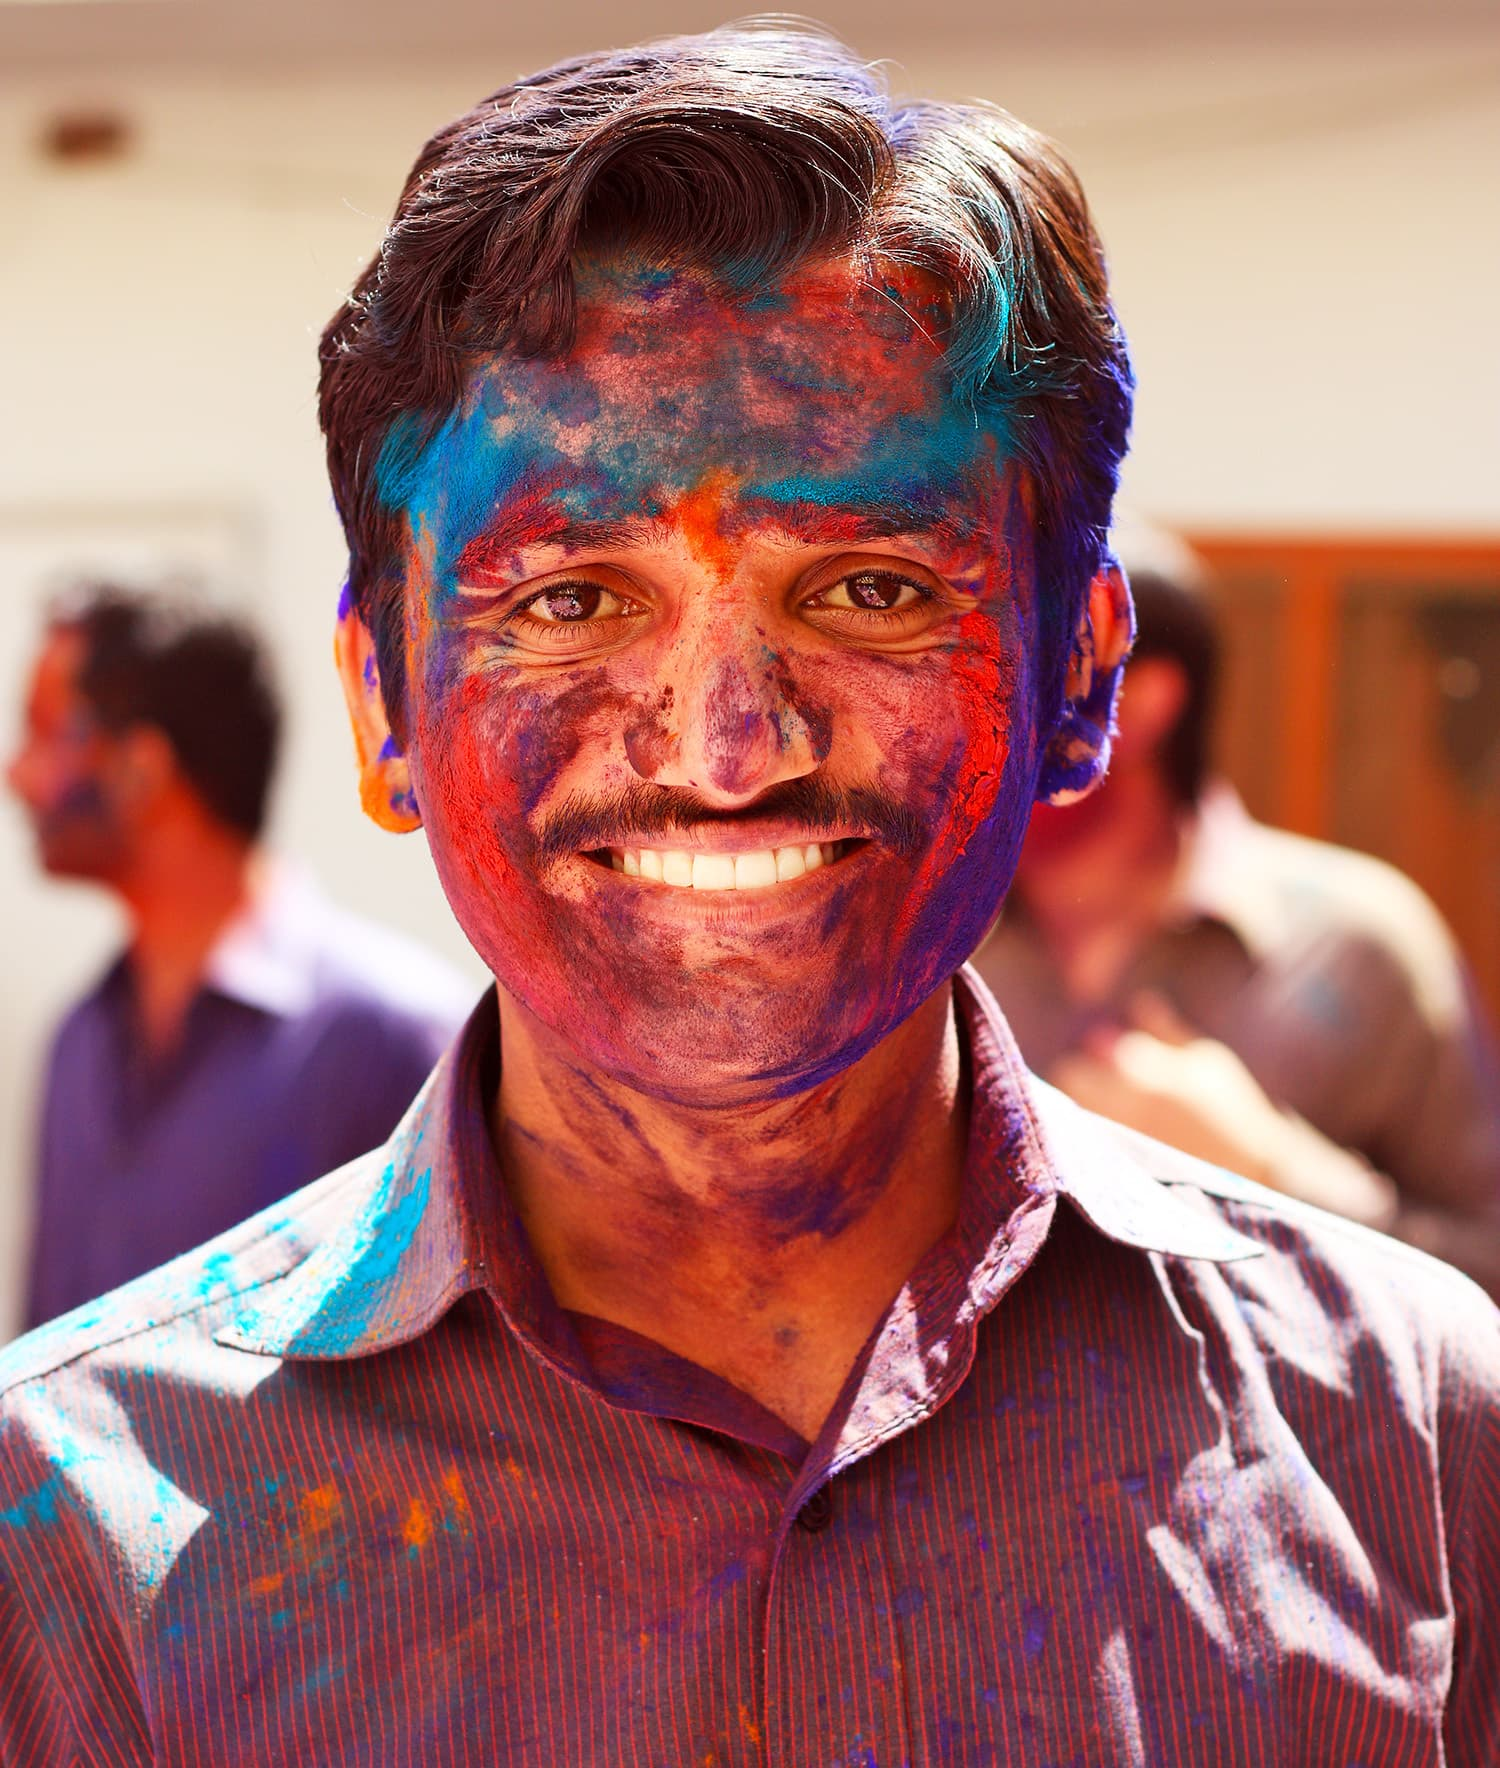 Holi brings out smiles on everyone's faces.